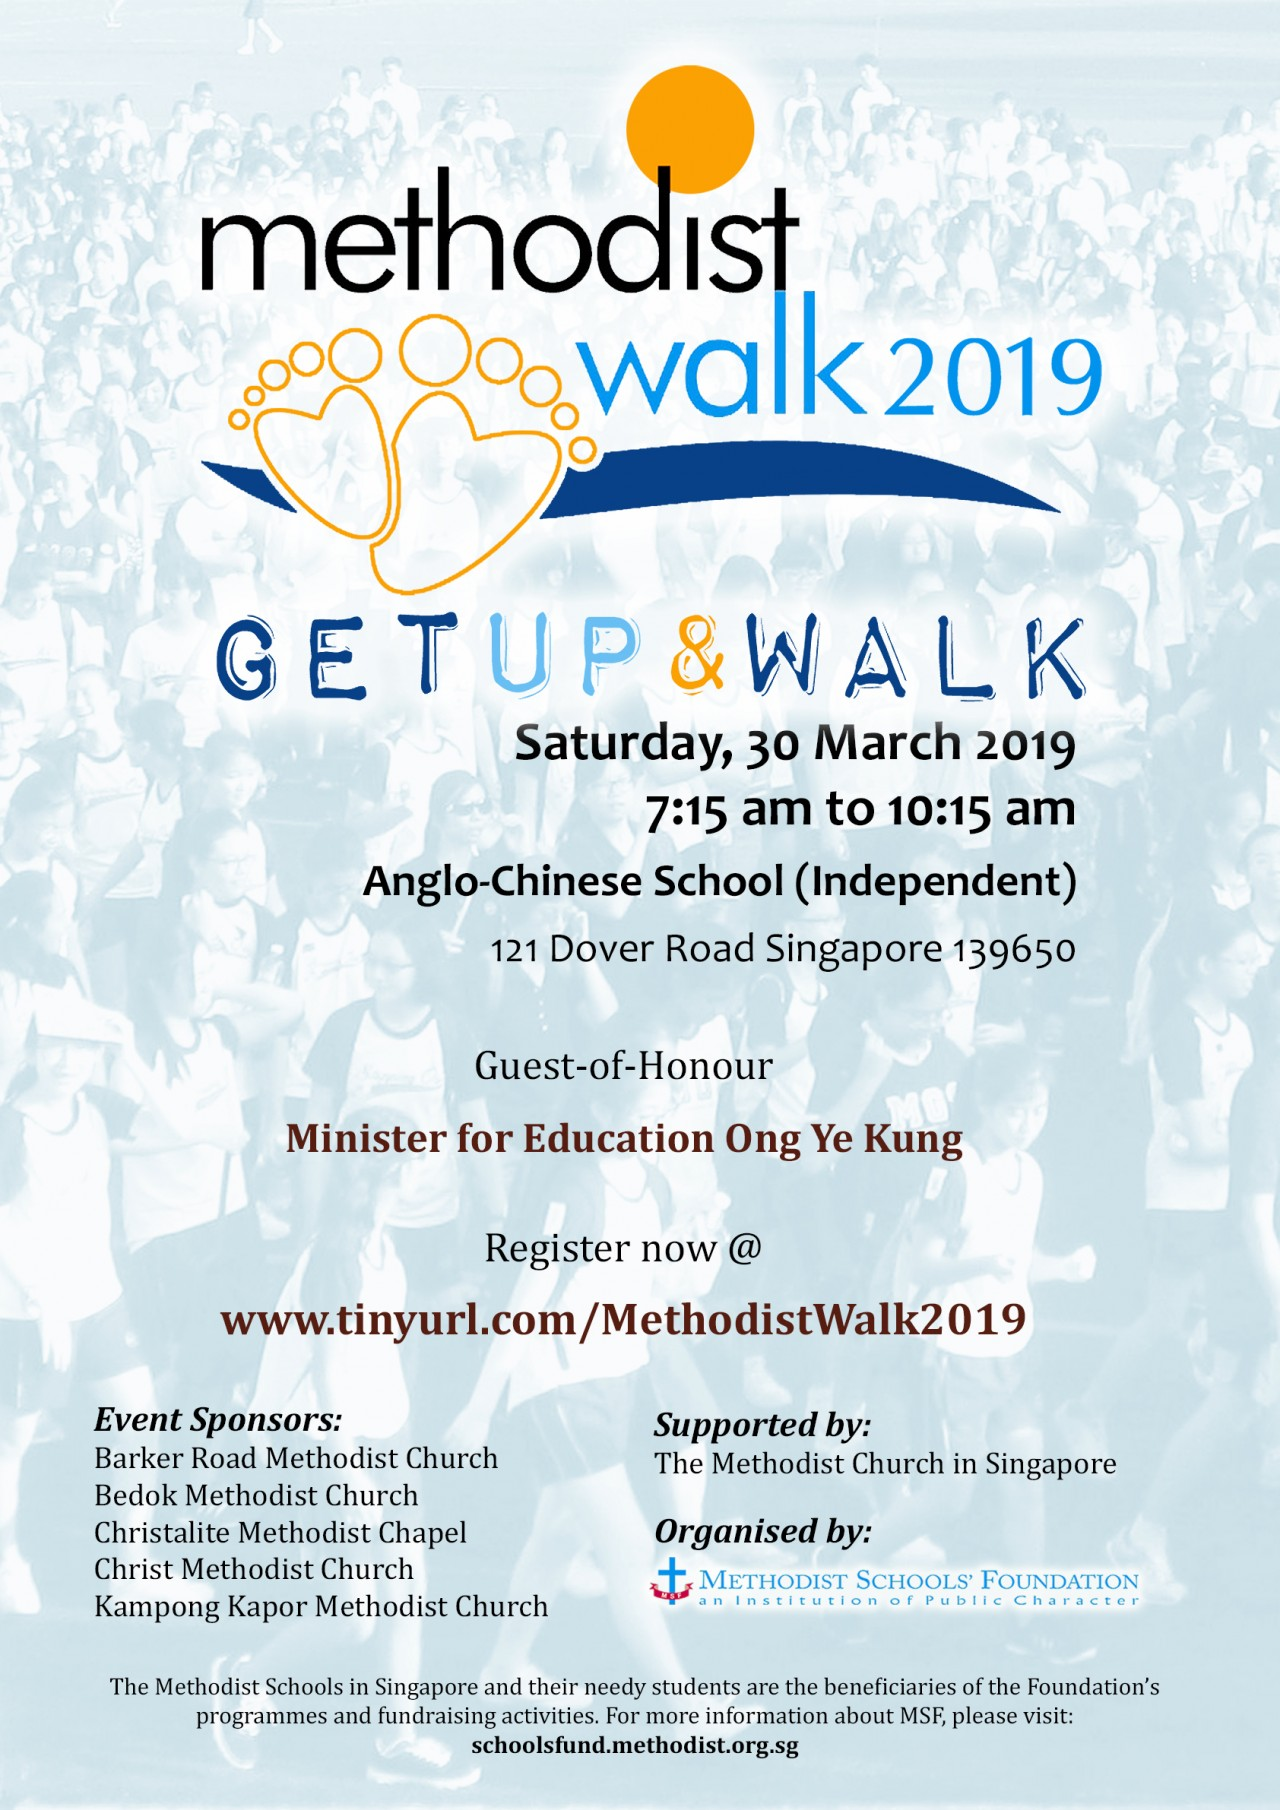 Methodist Walk 2019